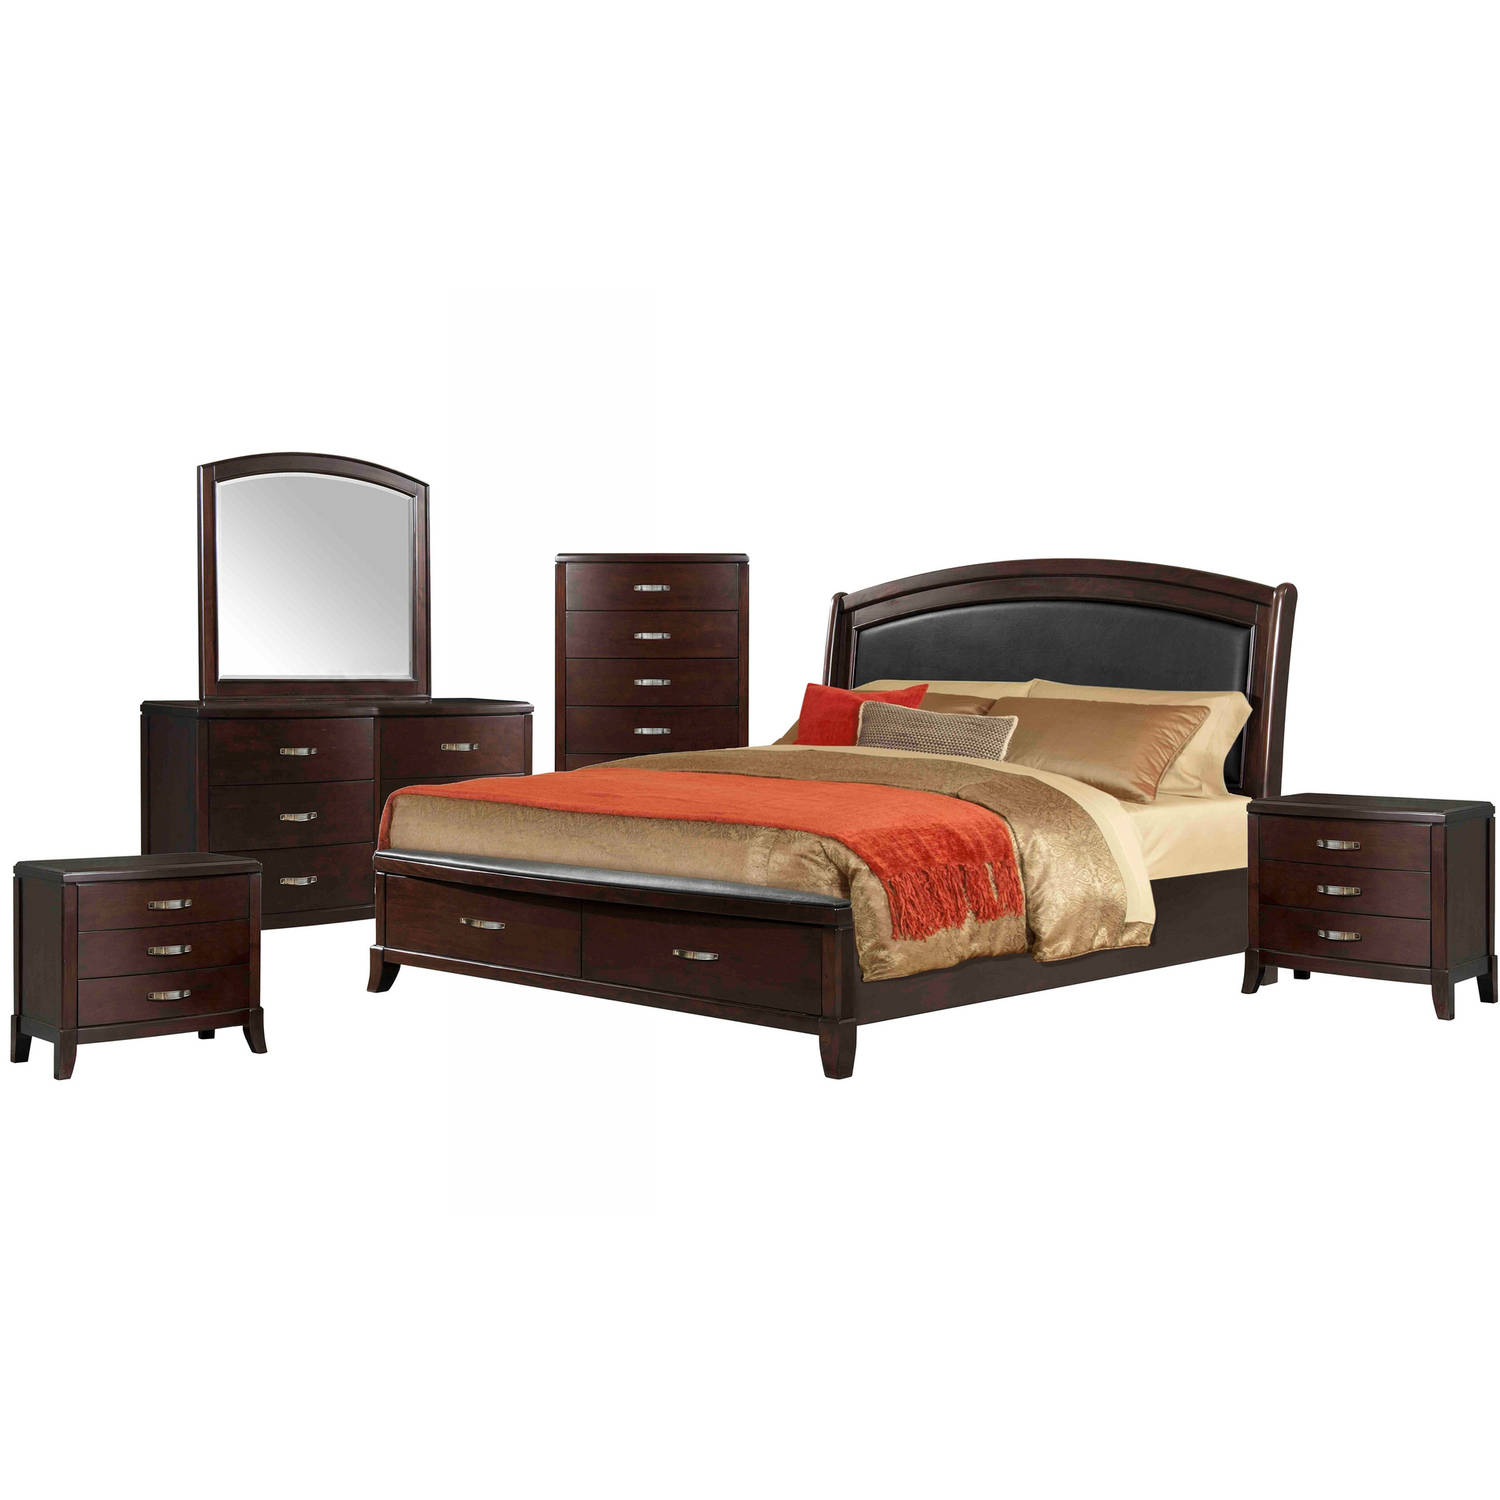 Picket House Furnishings Elaine Queen Platform Storage 6PC Bedroom Set w/ USB